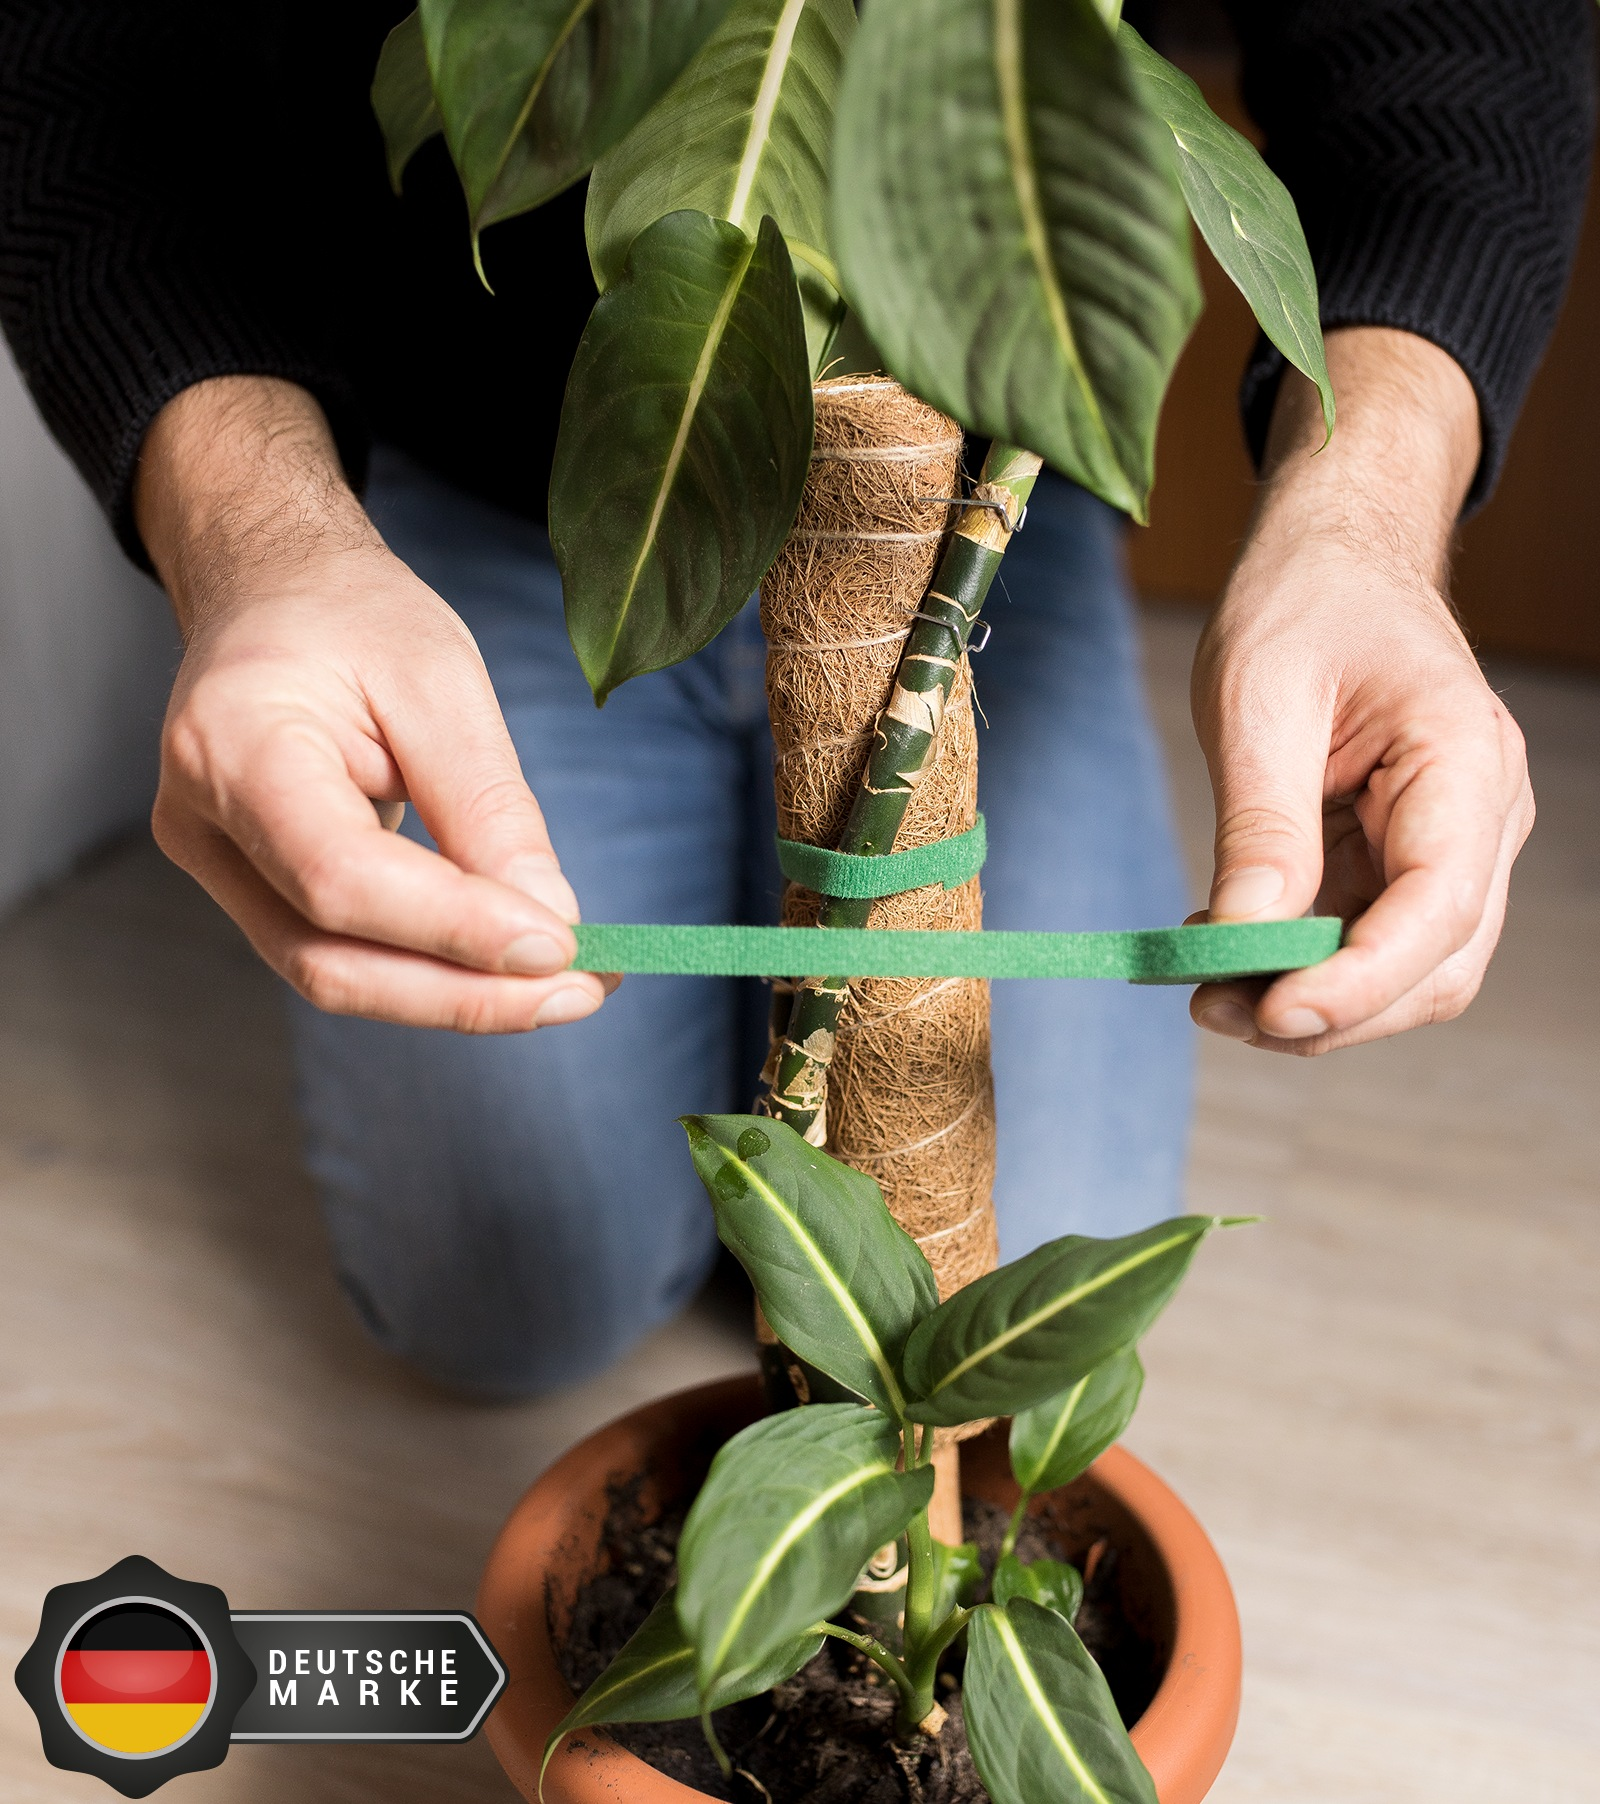 The winning image from a PickFu poll, showing plant tape being secured to a plant